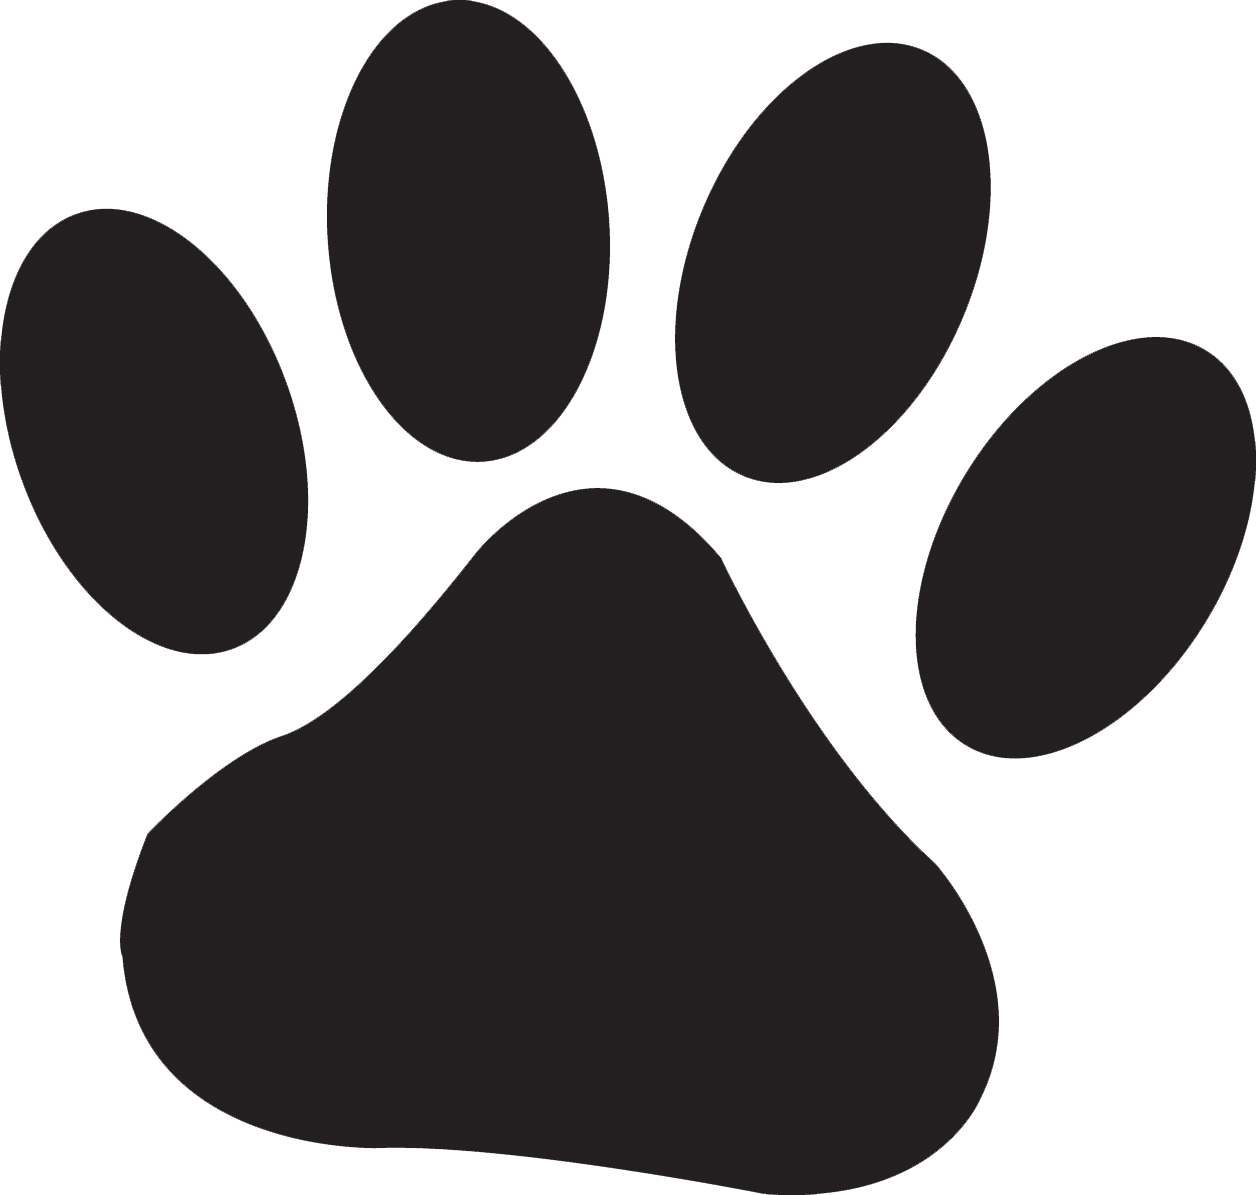 FilePaw Animal Rights Symbolpng Wikimedia Commons